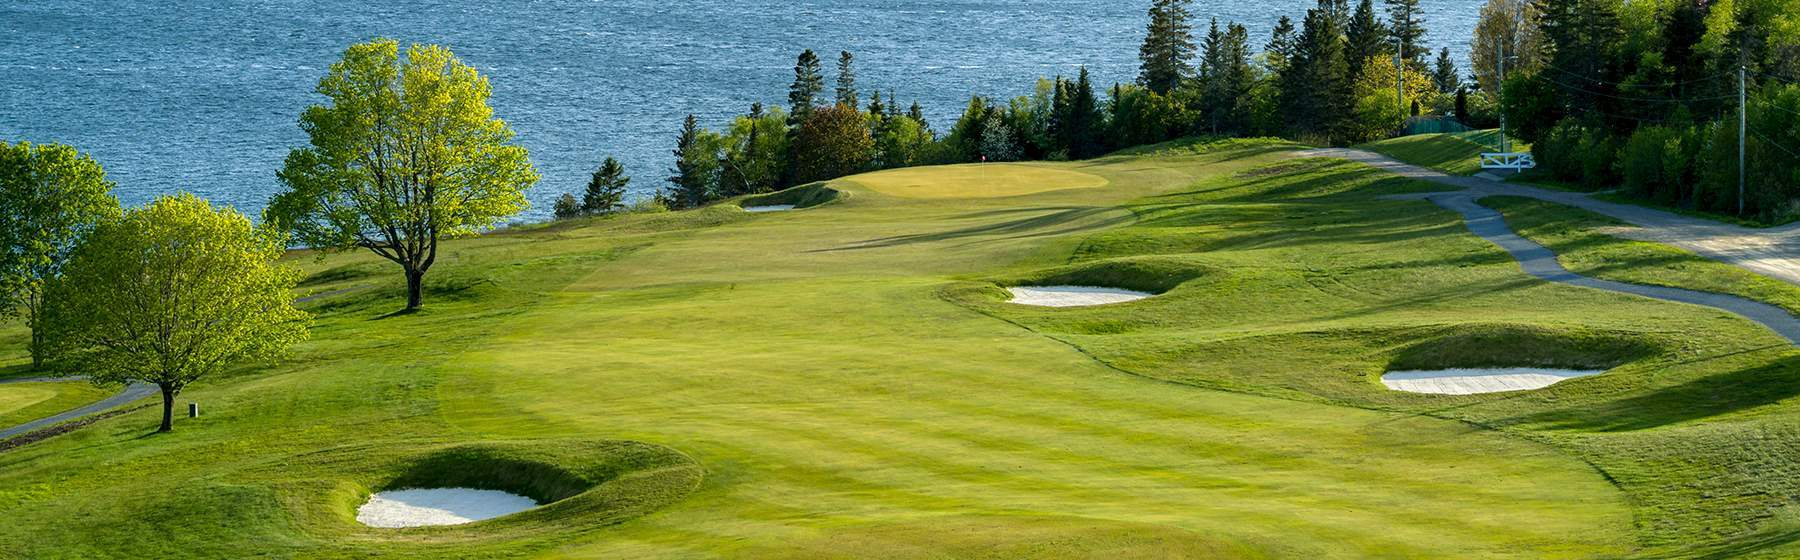 Golf green fees at Algonquinresort,Andrews By The Sea